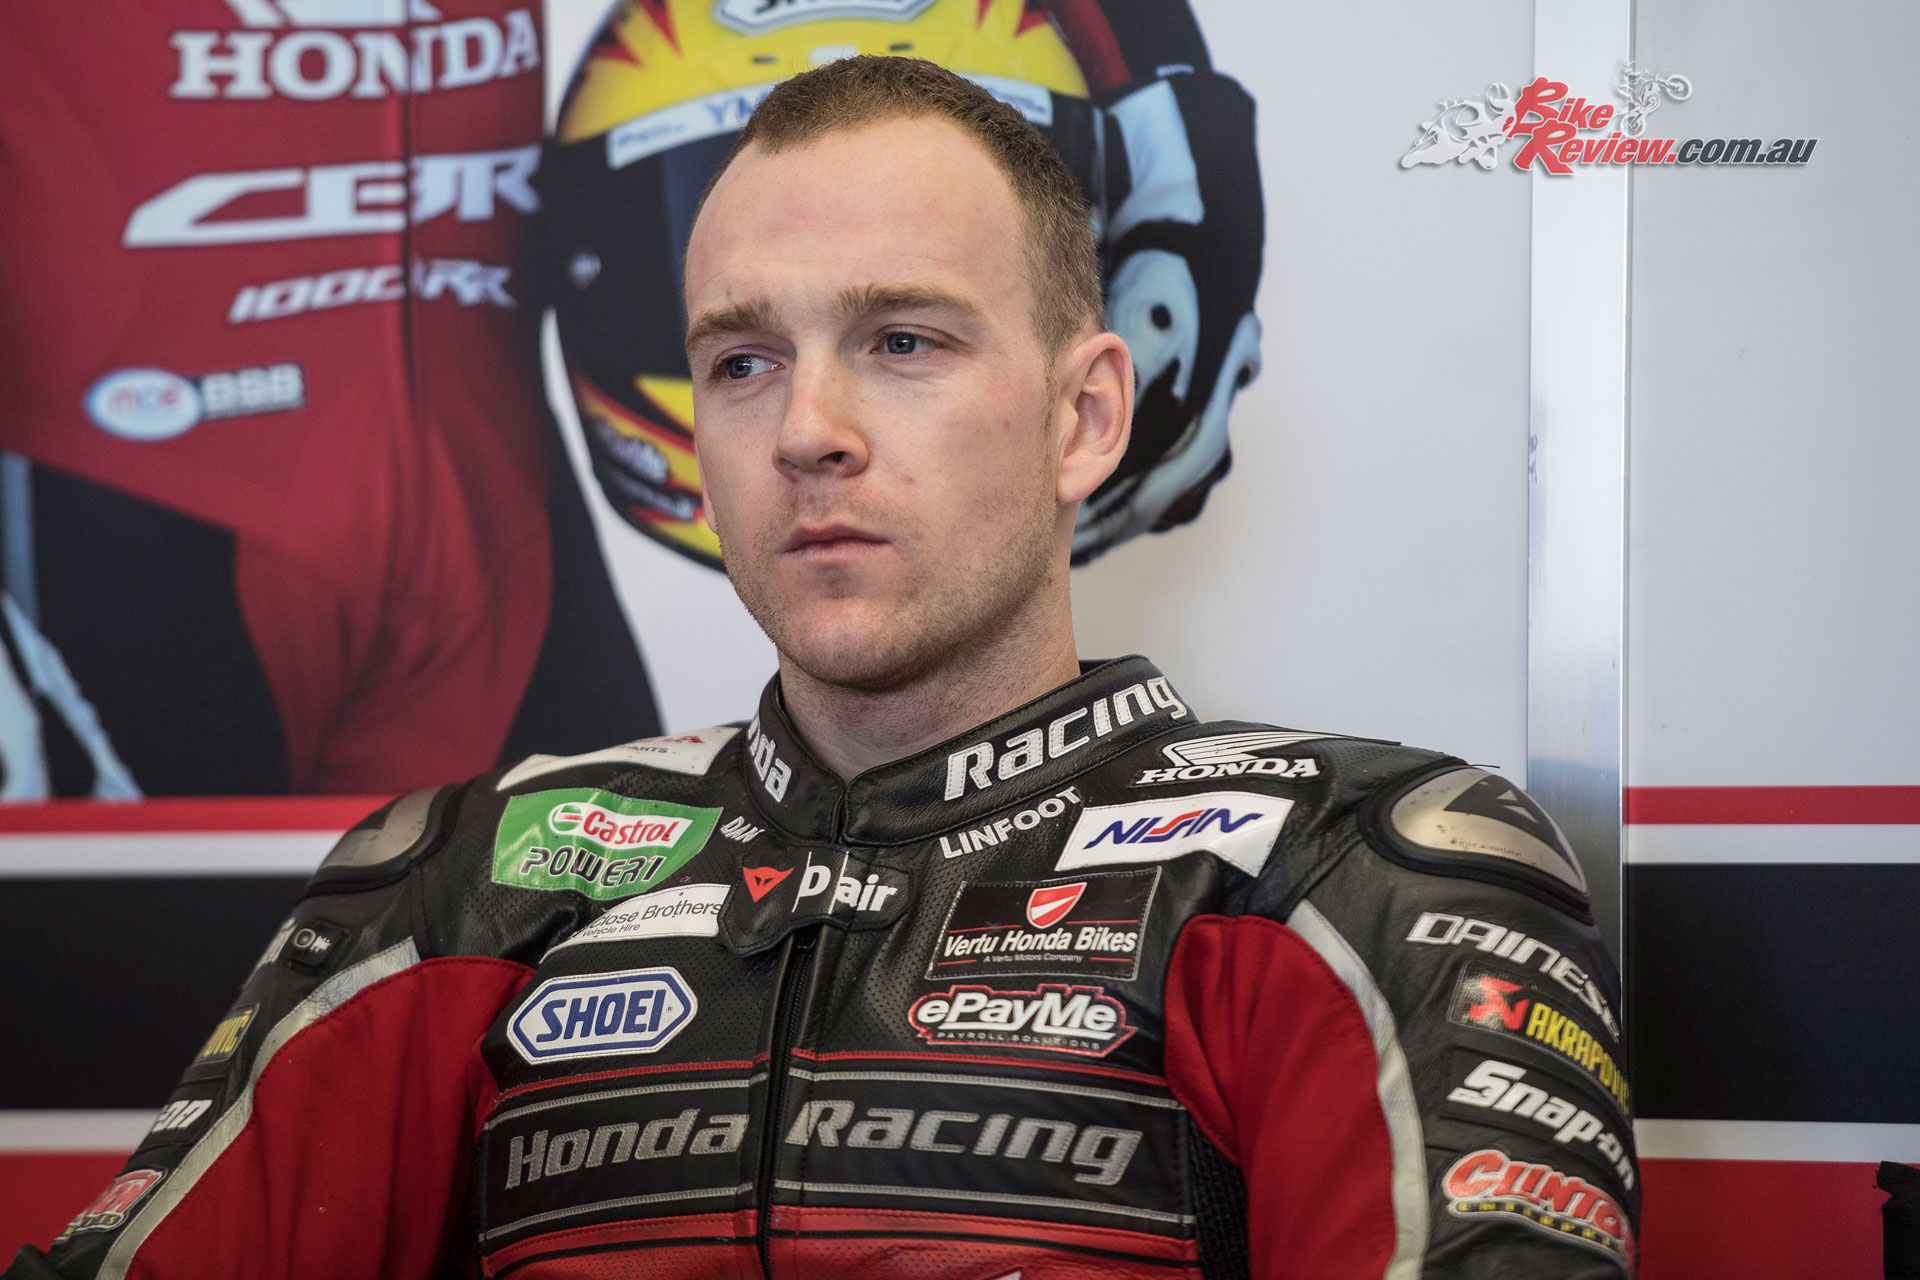 Dan Linfoot - Image by Impact Images/2SNAP